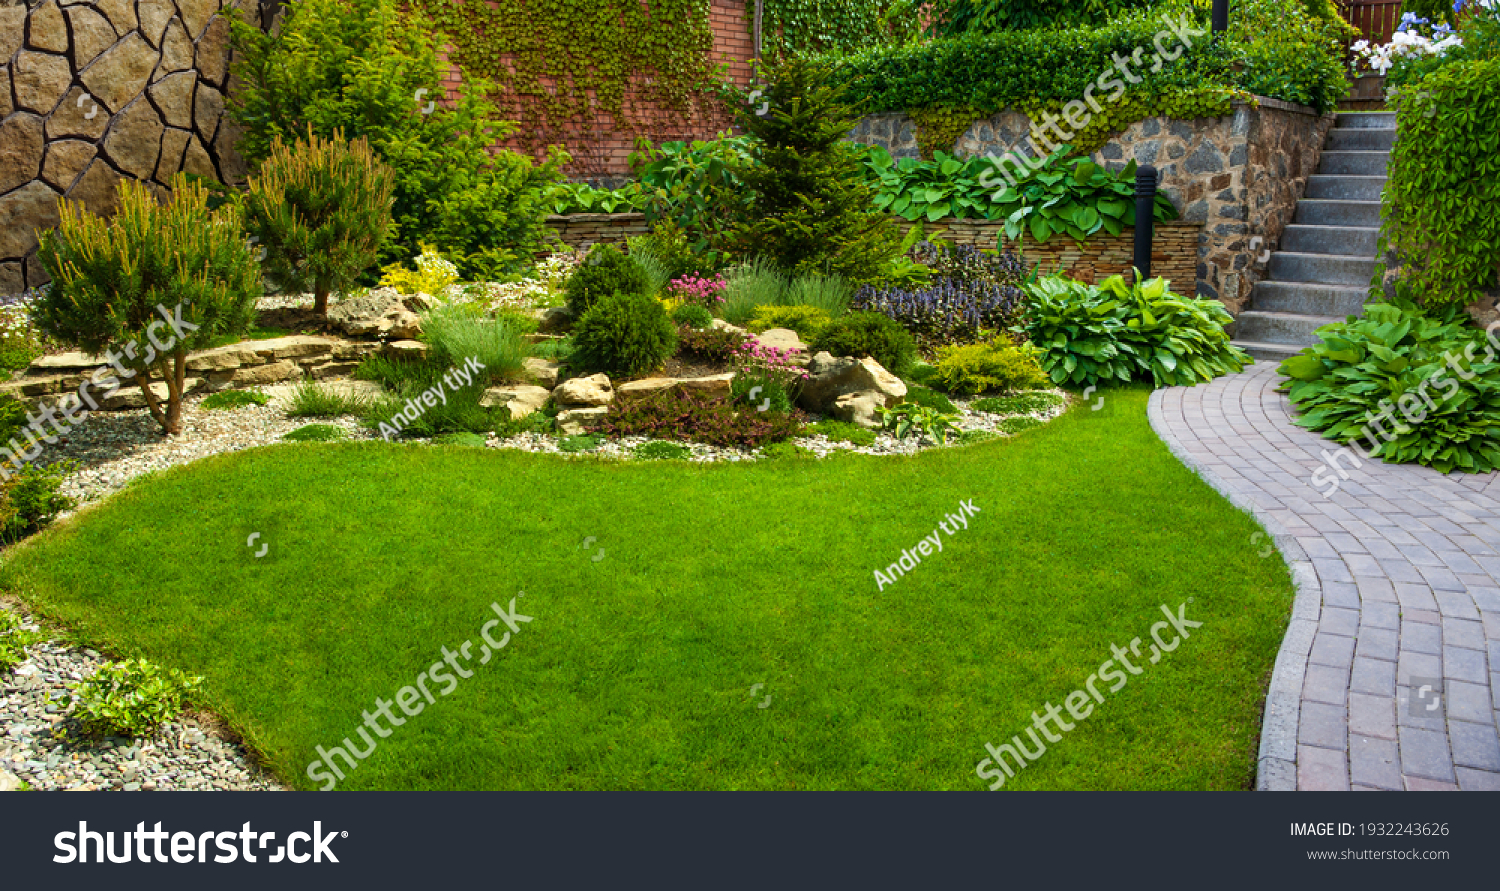 Garden stone path with grass growing up between the stones.Detail of a botanical garden. #1932243626